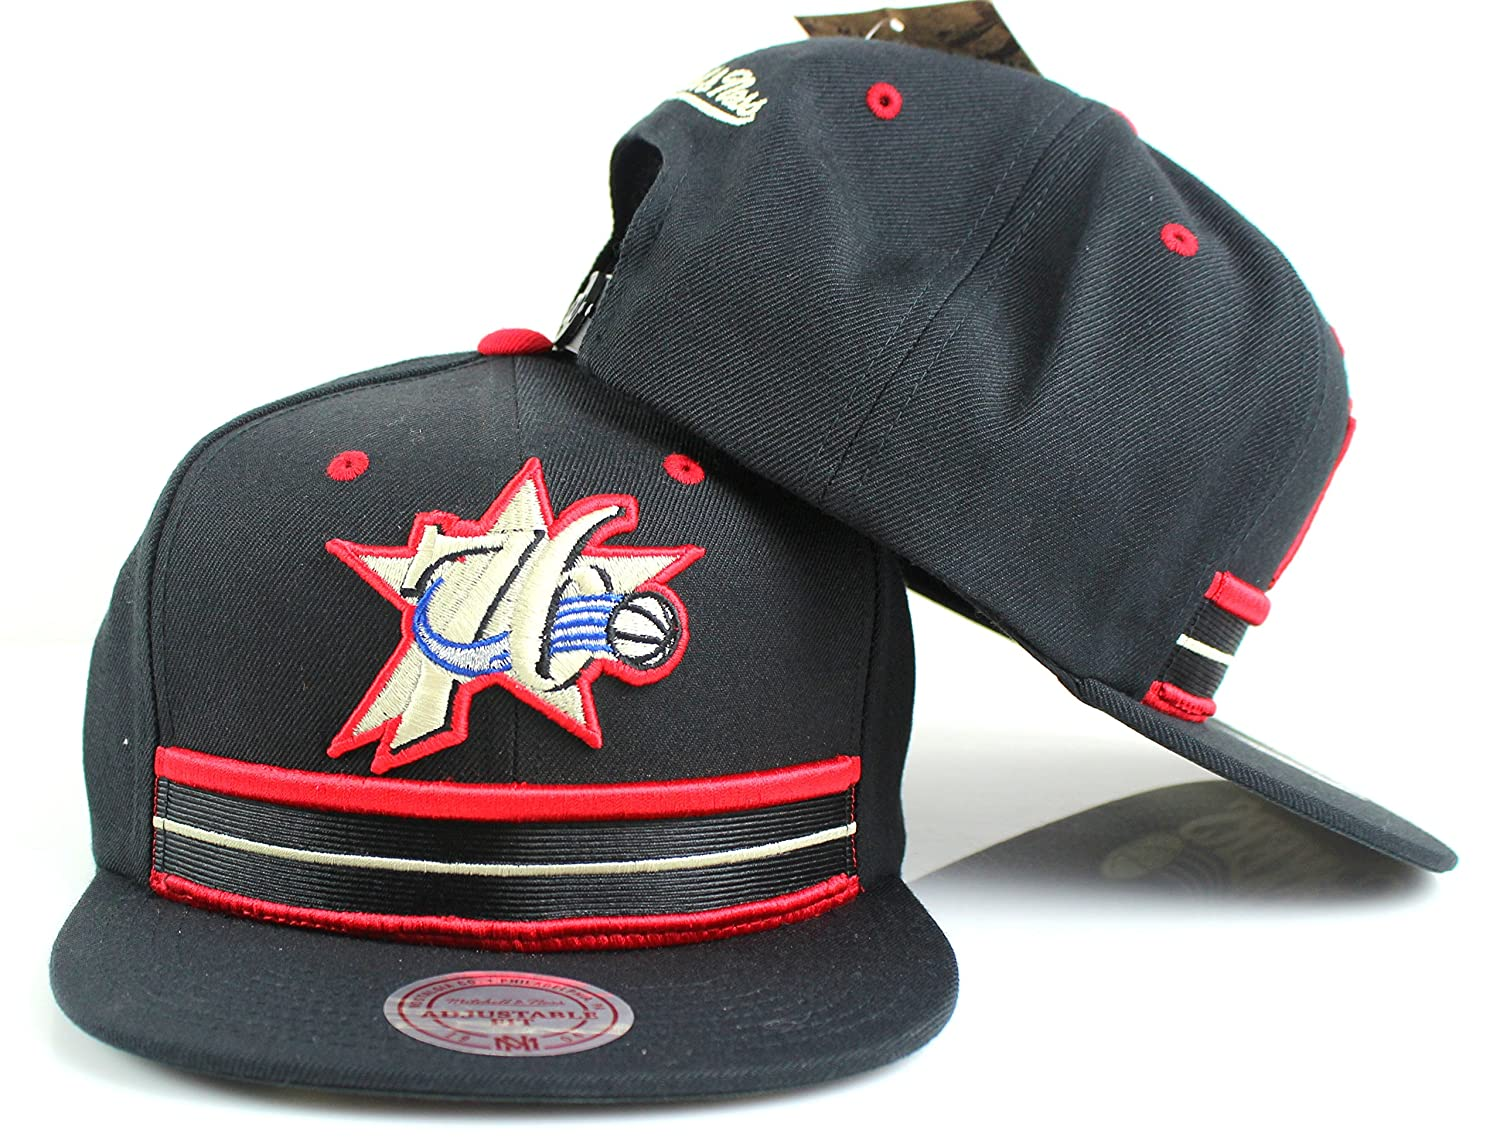 7238da4aa7a Amazon.com   Mitchell   Ness Philadelphia 76ers NBA Uniform Detail Snapback Hat  Black   Sports   Outdoors